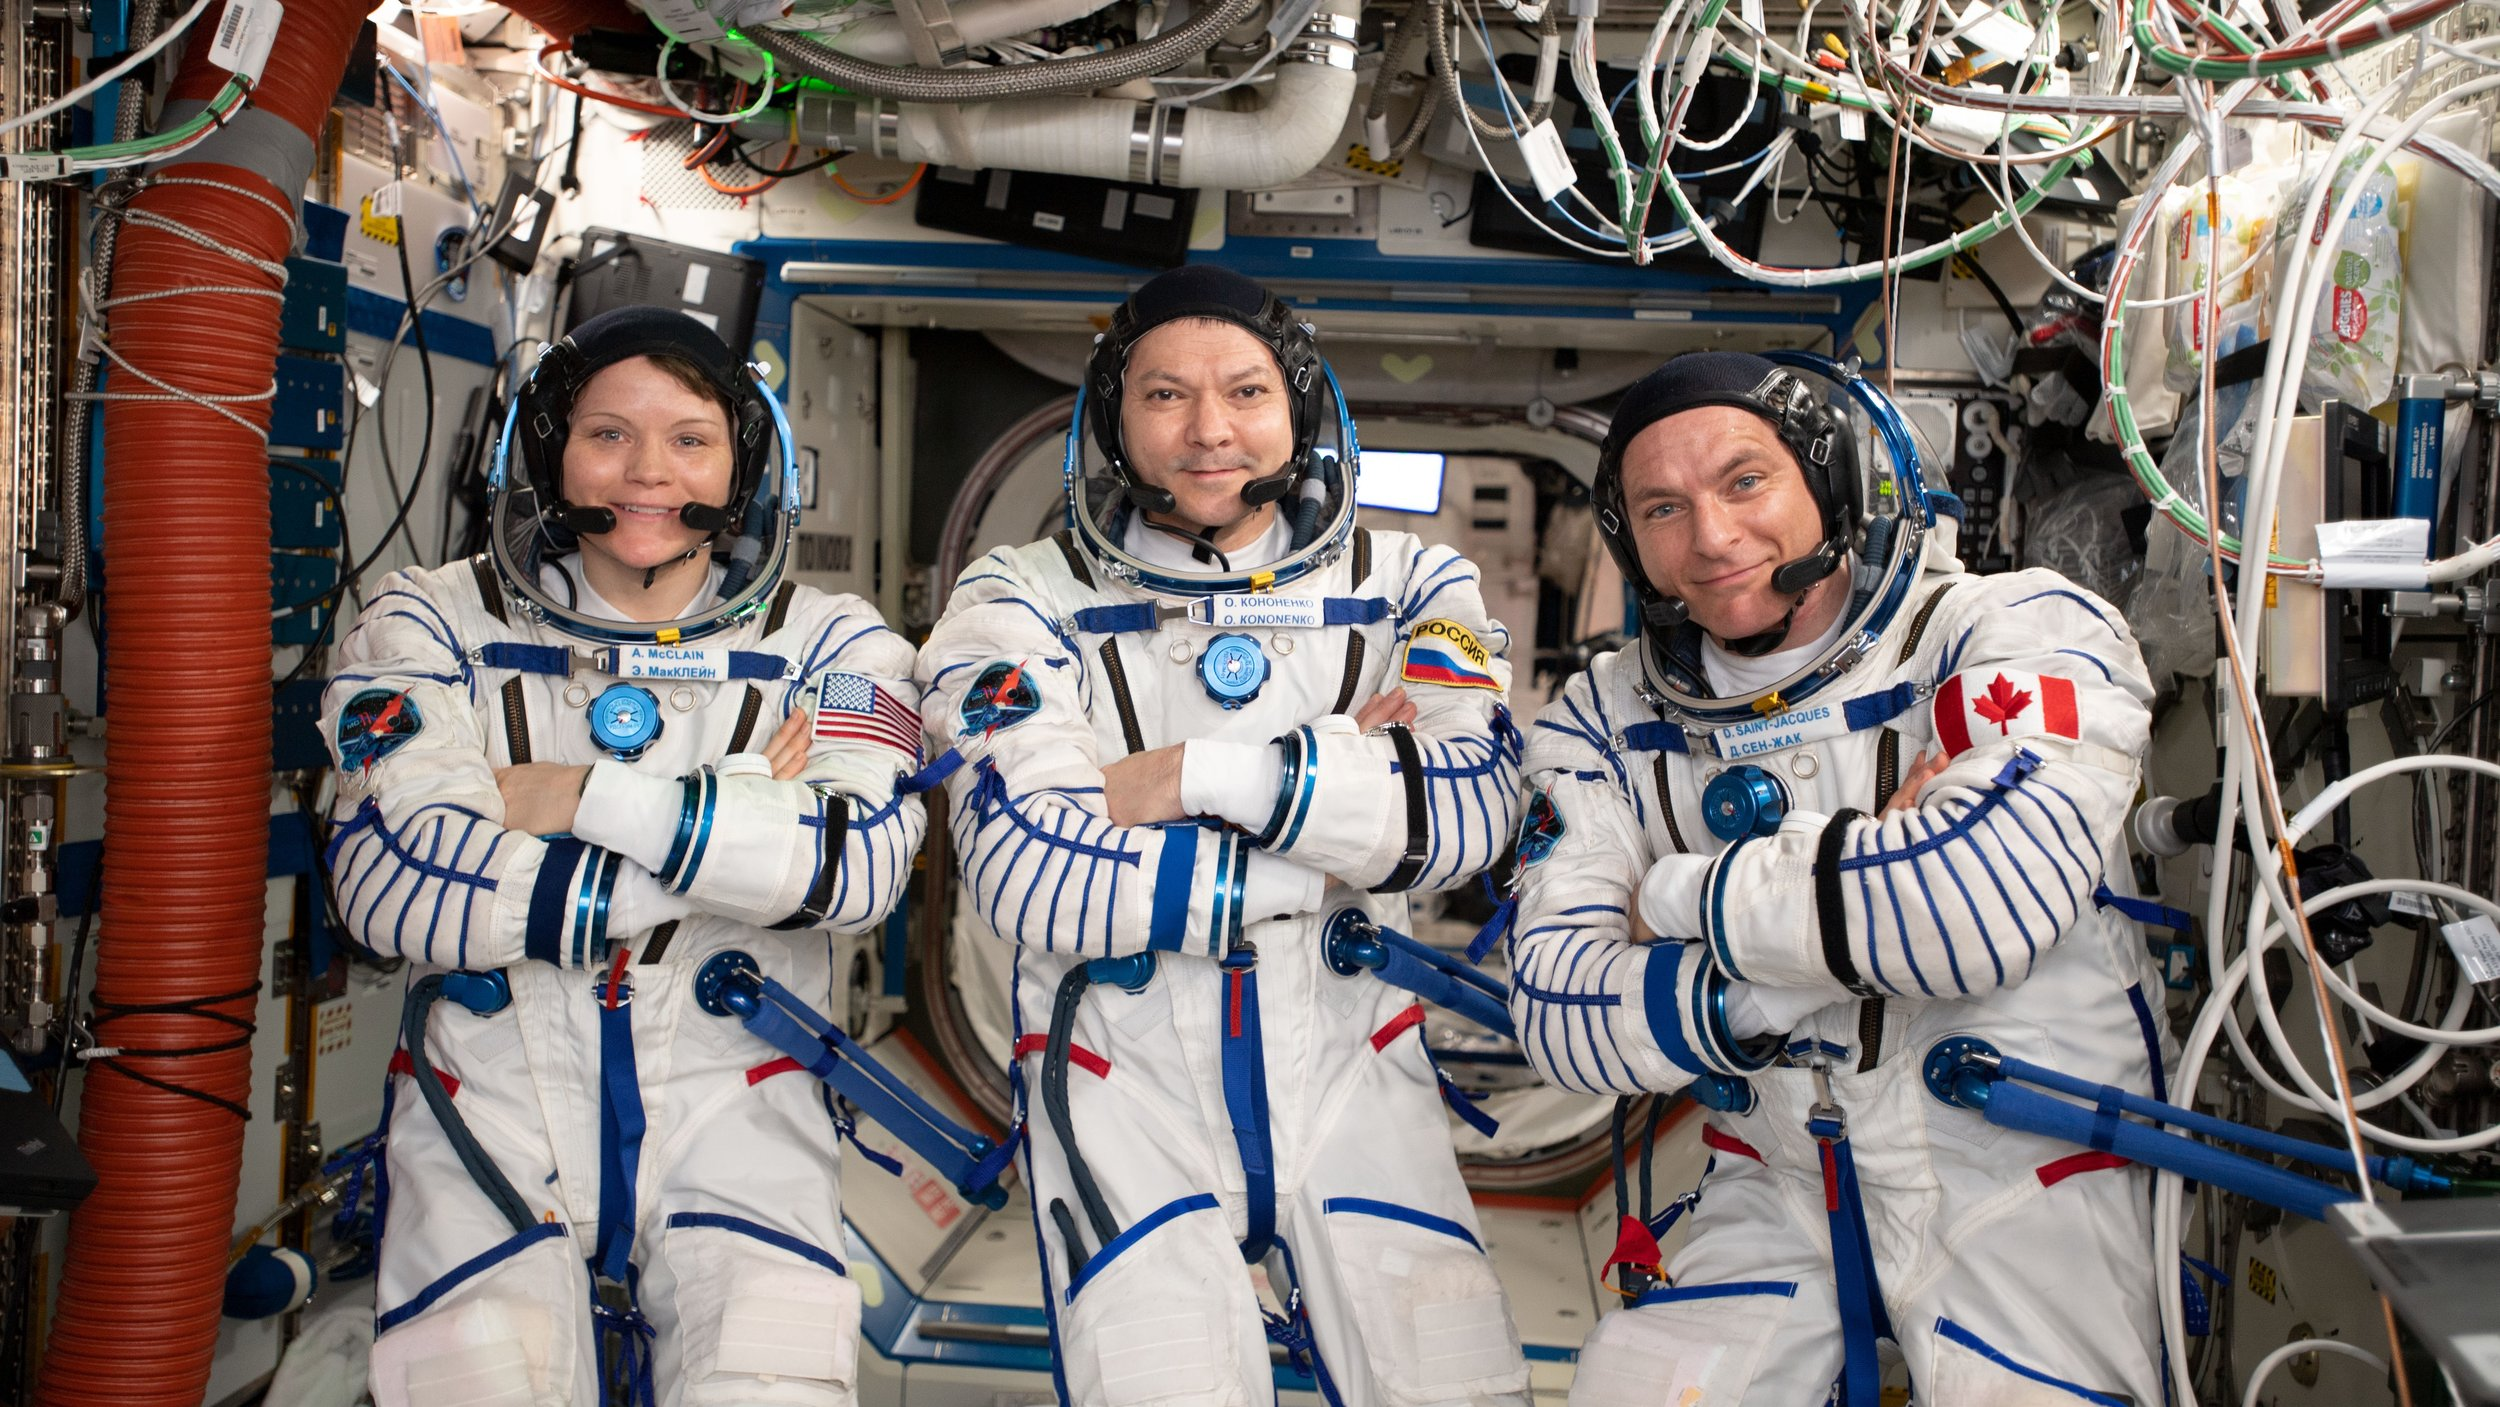 NASA's Anne McClain, left, Russia's Oleg Kononenko, center, and Canadian Space Agency astronaut David Saint-Jacques in their Sokol launch and entry suits aboard the ISS several days before their departure in Soyuz MS-11. Credit: NASA